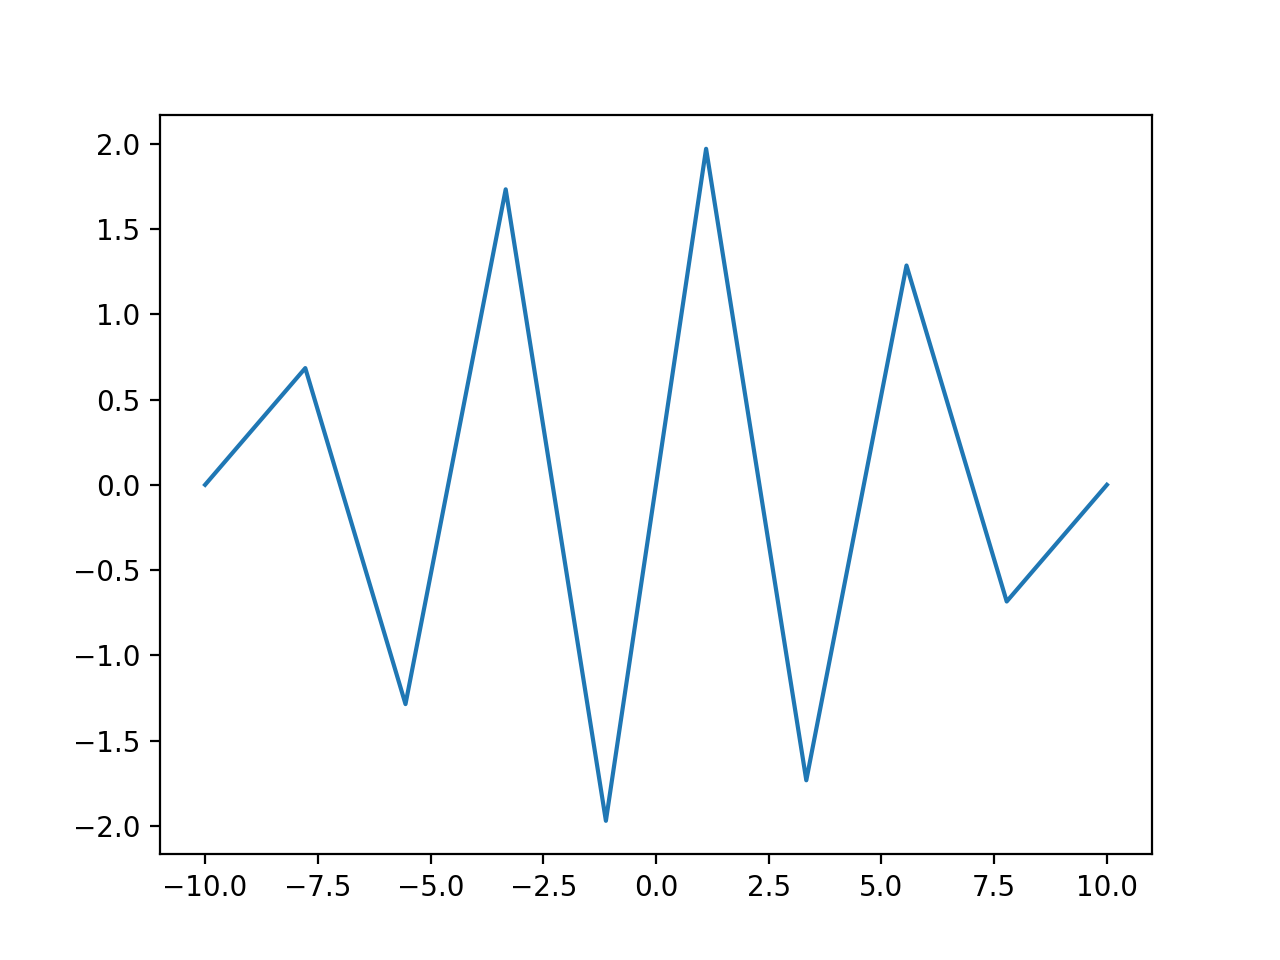 Plot of a Wave with Undersampling